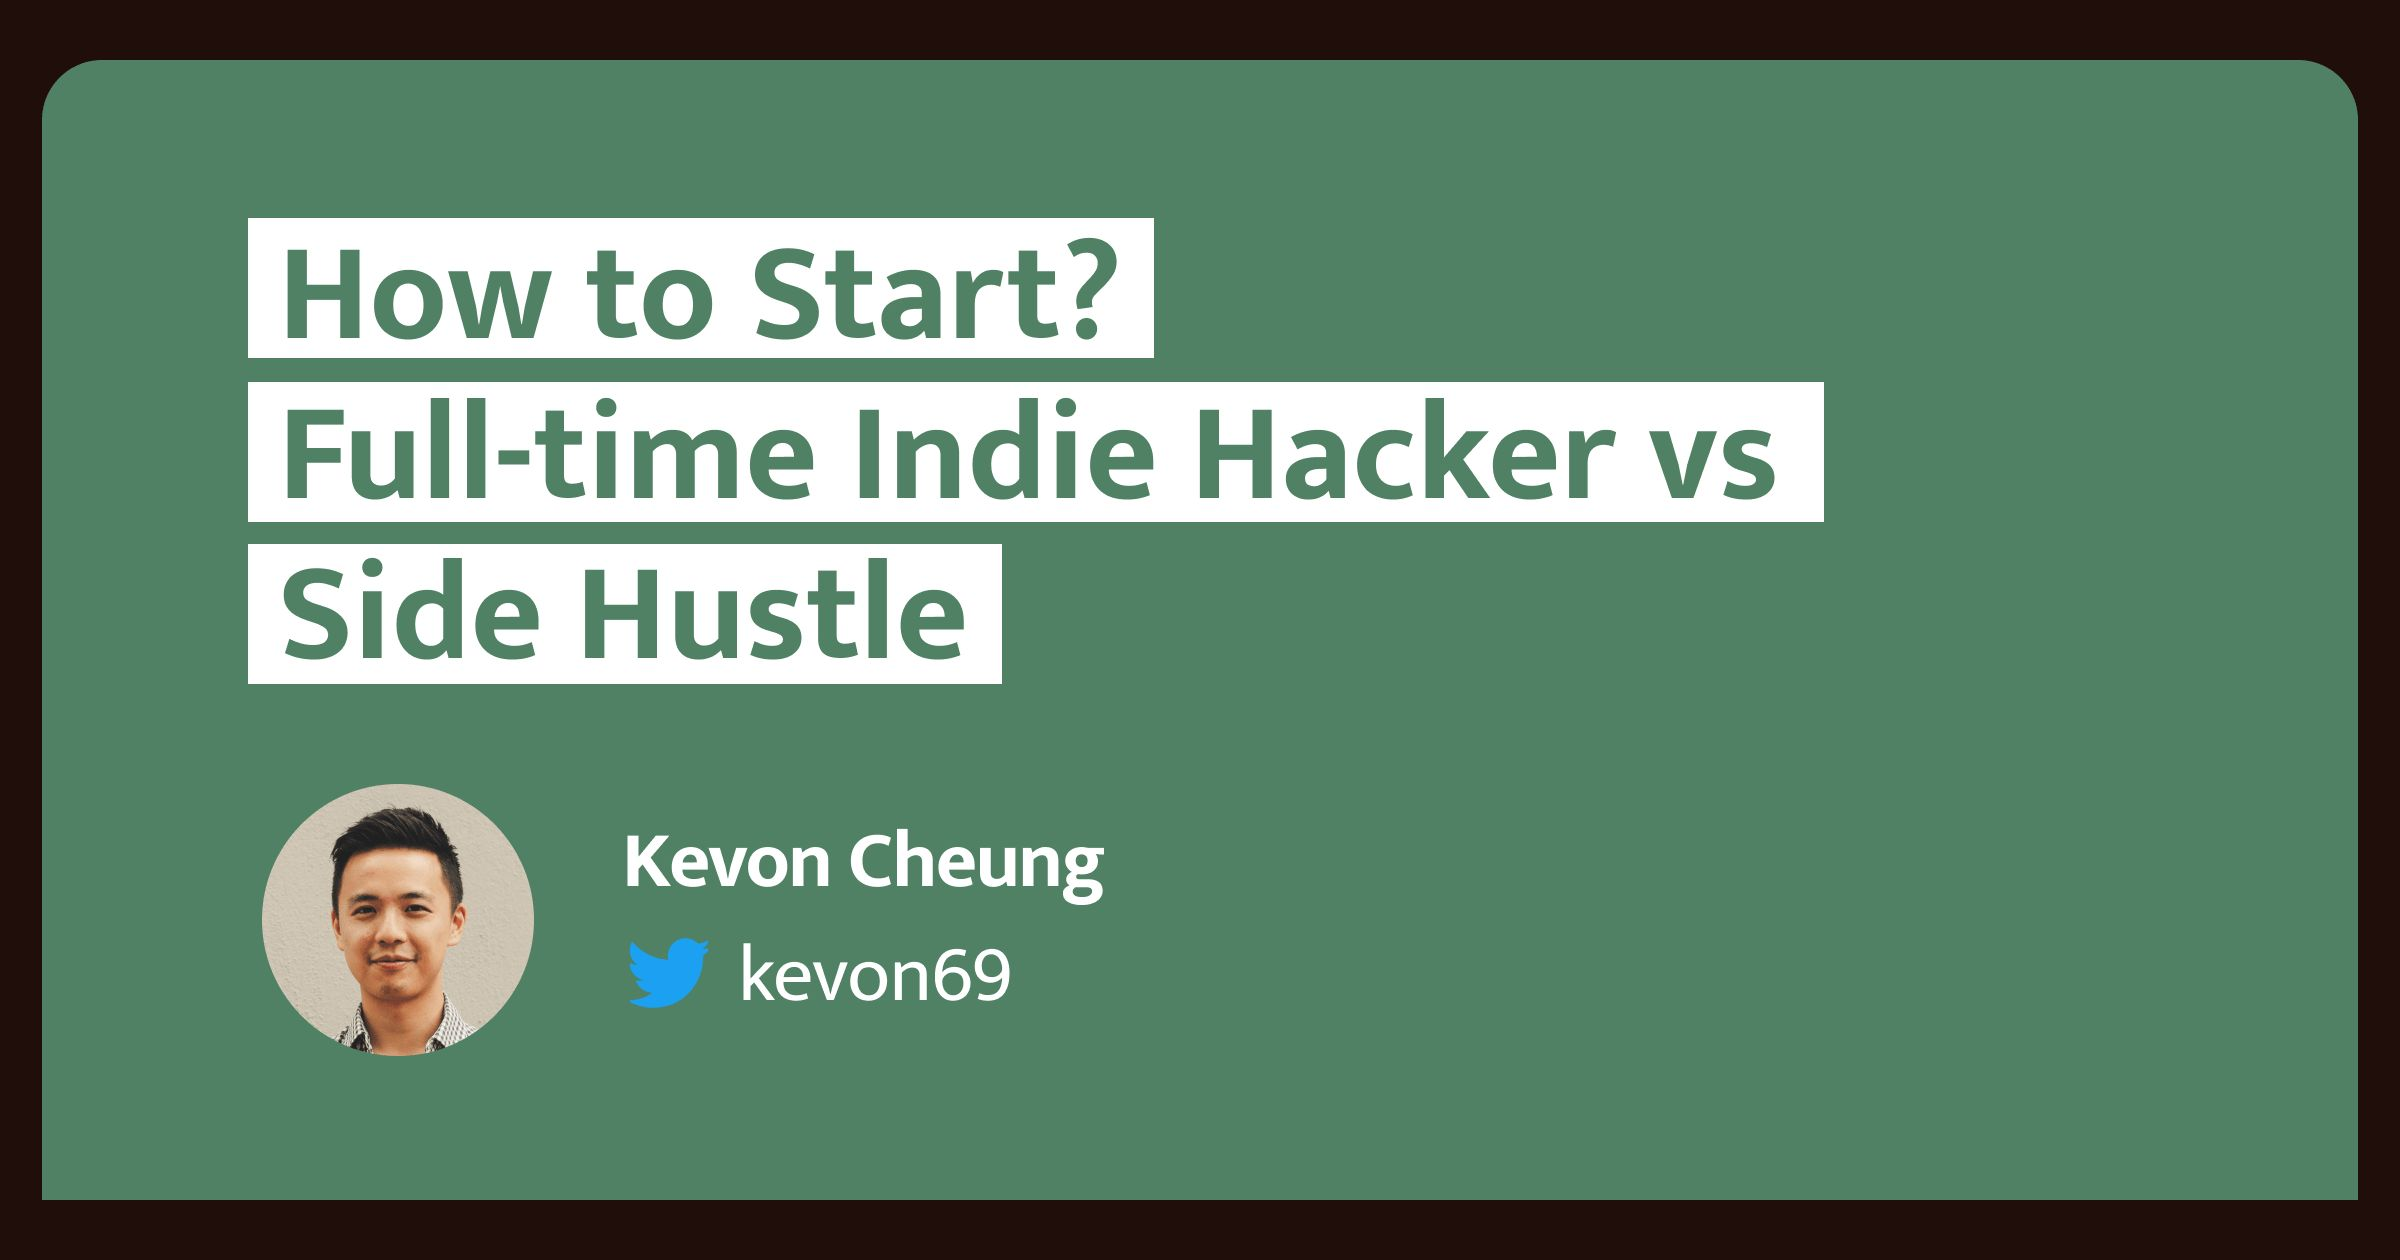 /full-time-indie-hacker-vs-side-hustle-the-different-ways-of-chasing-the-cheddar-hr3h33kq feature image